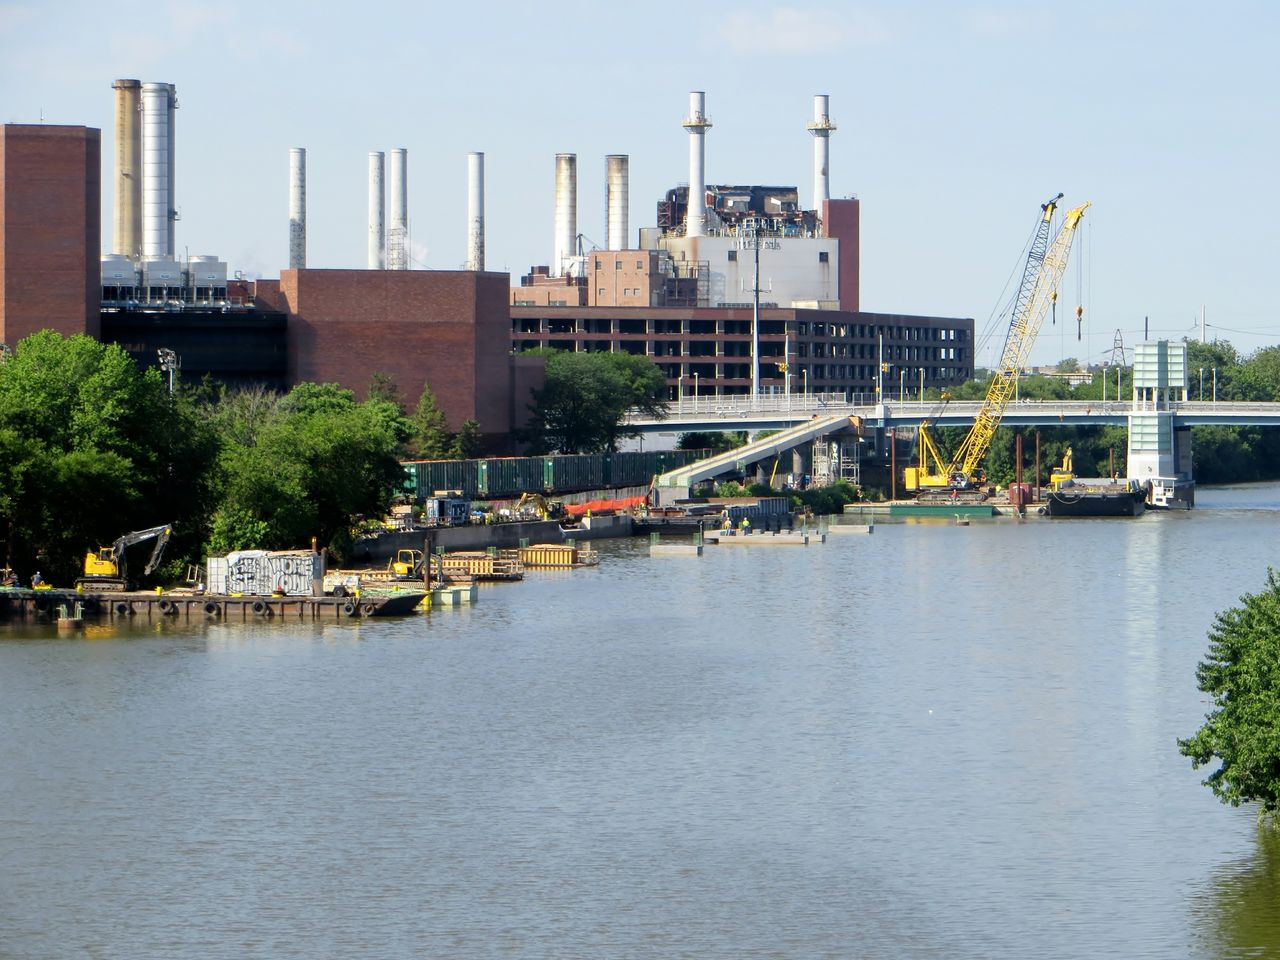 Phases of construction and equipment span the Schuylkill's banks